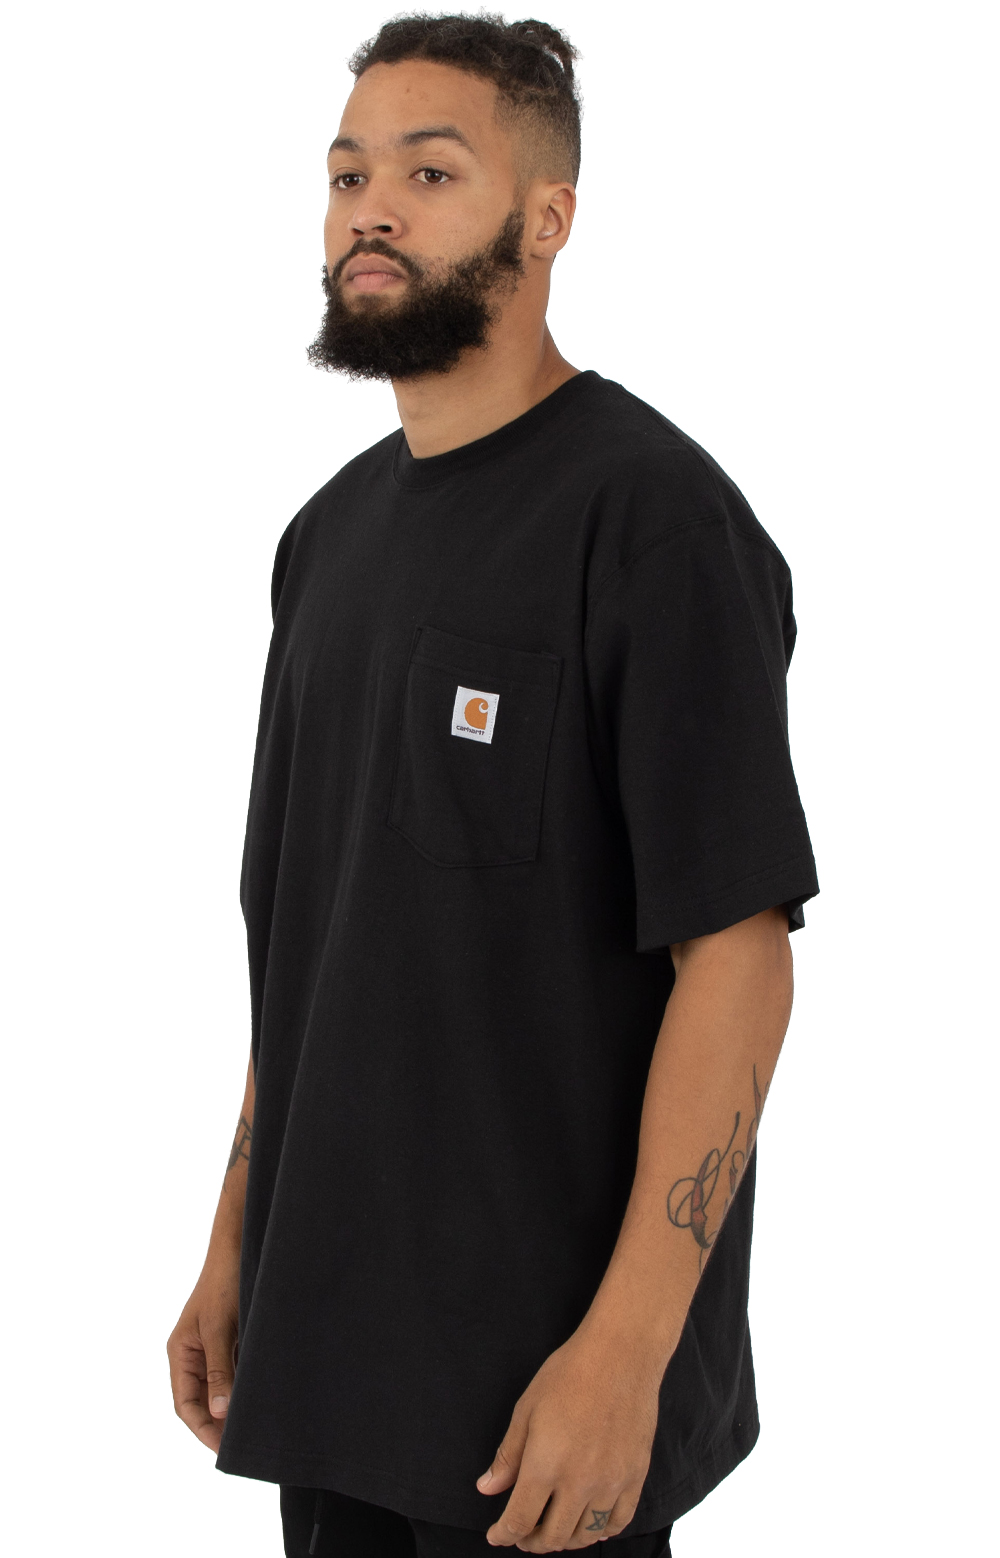 (K87) Workwear Pocket T-Shirt - Black 2